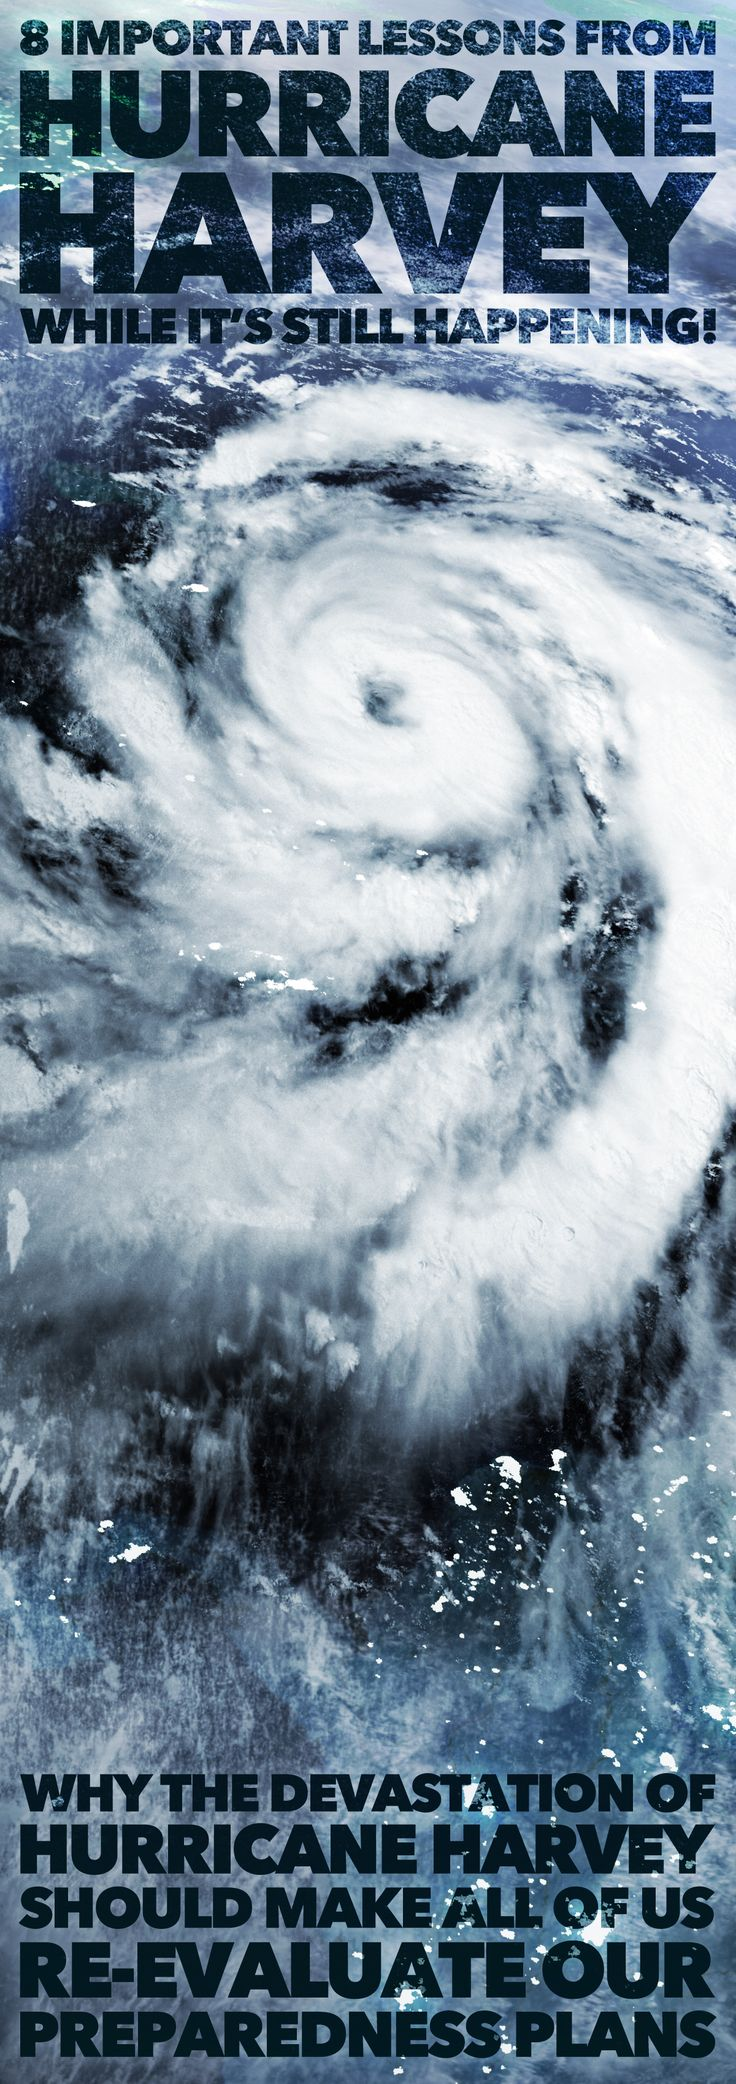 8 IMPORTANT LESSONS TO LEARN FROM HURRICANE HARVEY!! And why the devastation caused by Hurricane Harvey should make all of us re-evaluate our preparedness plans!!